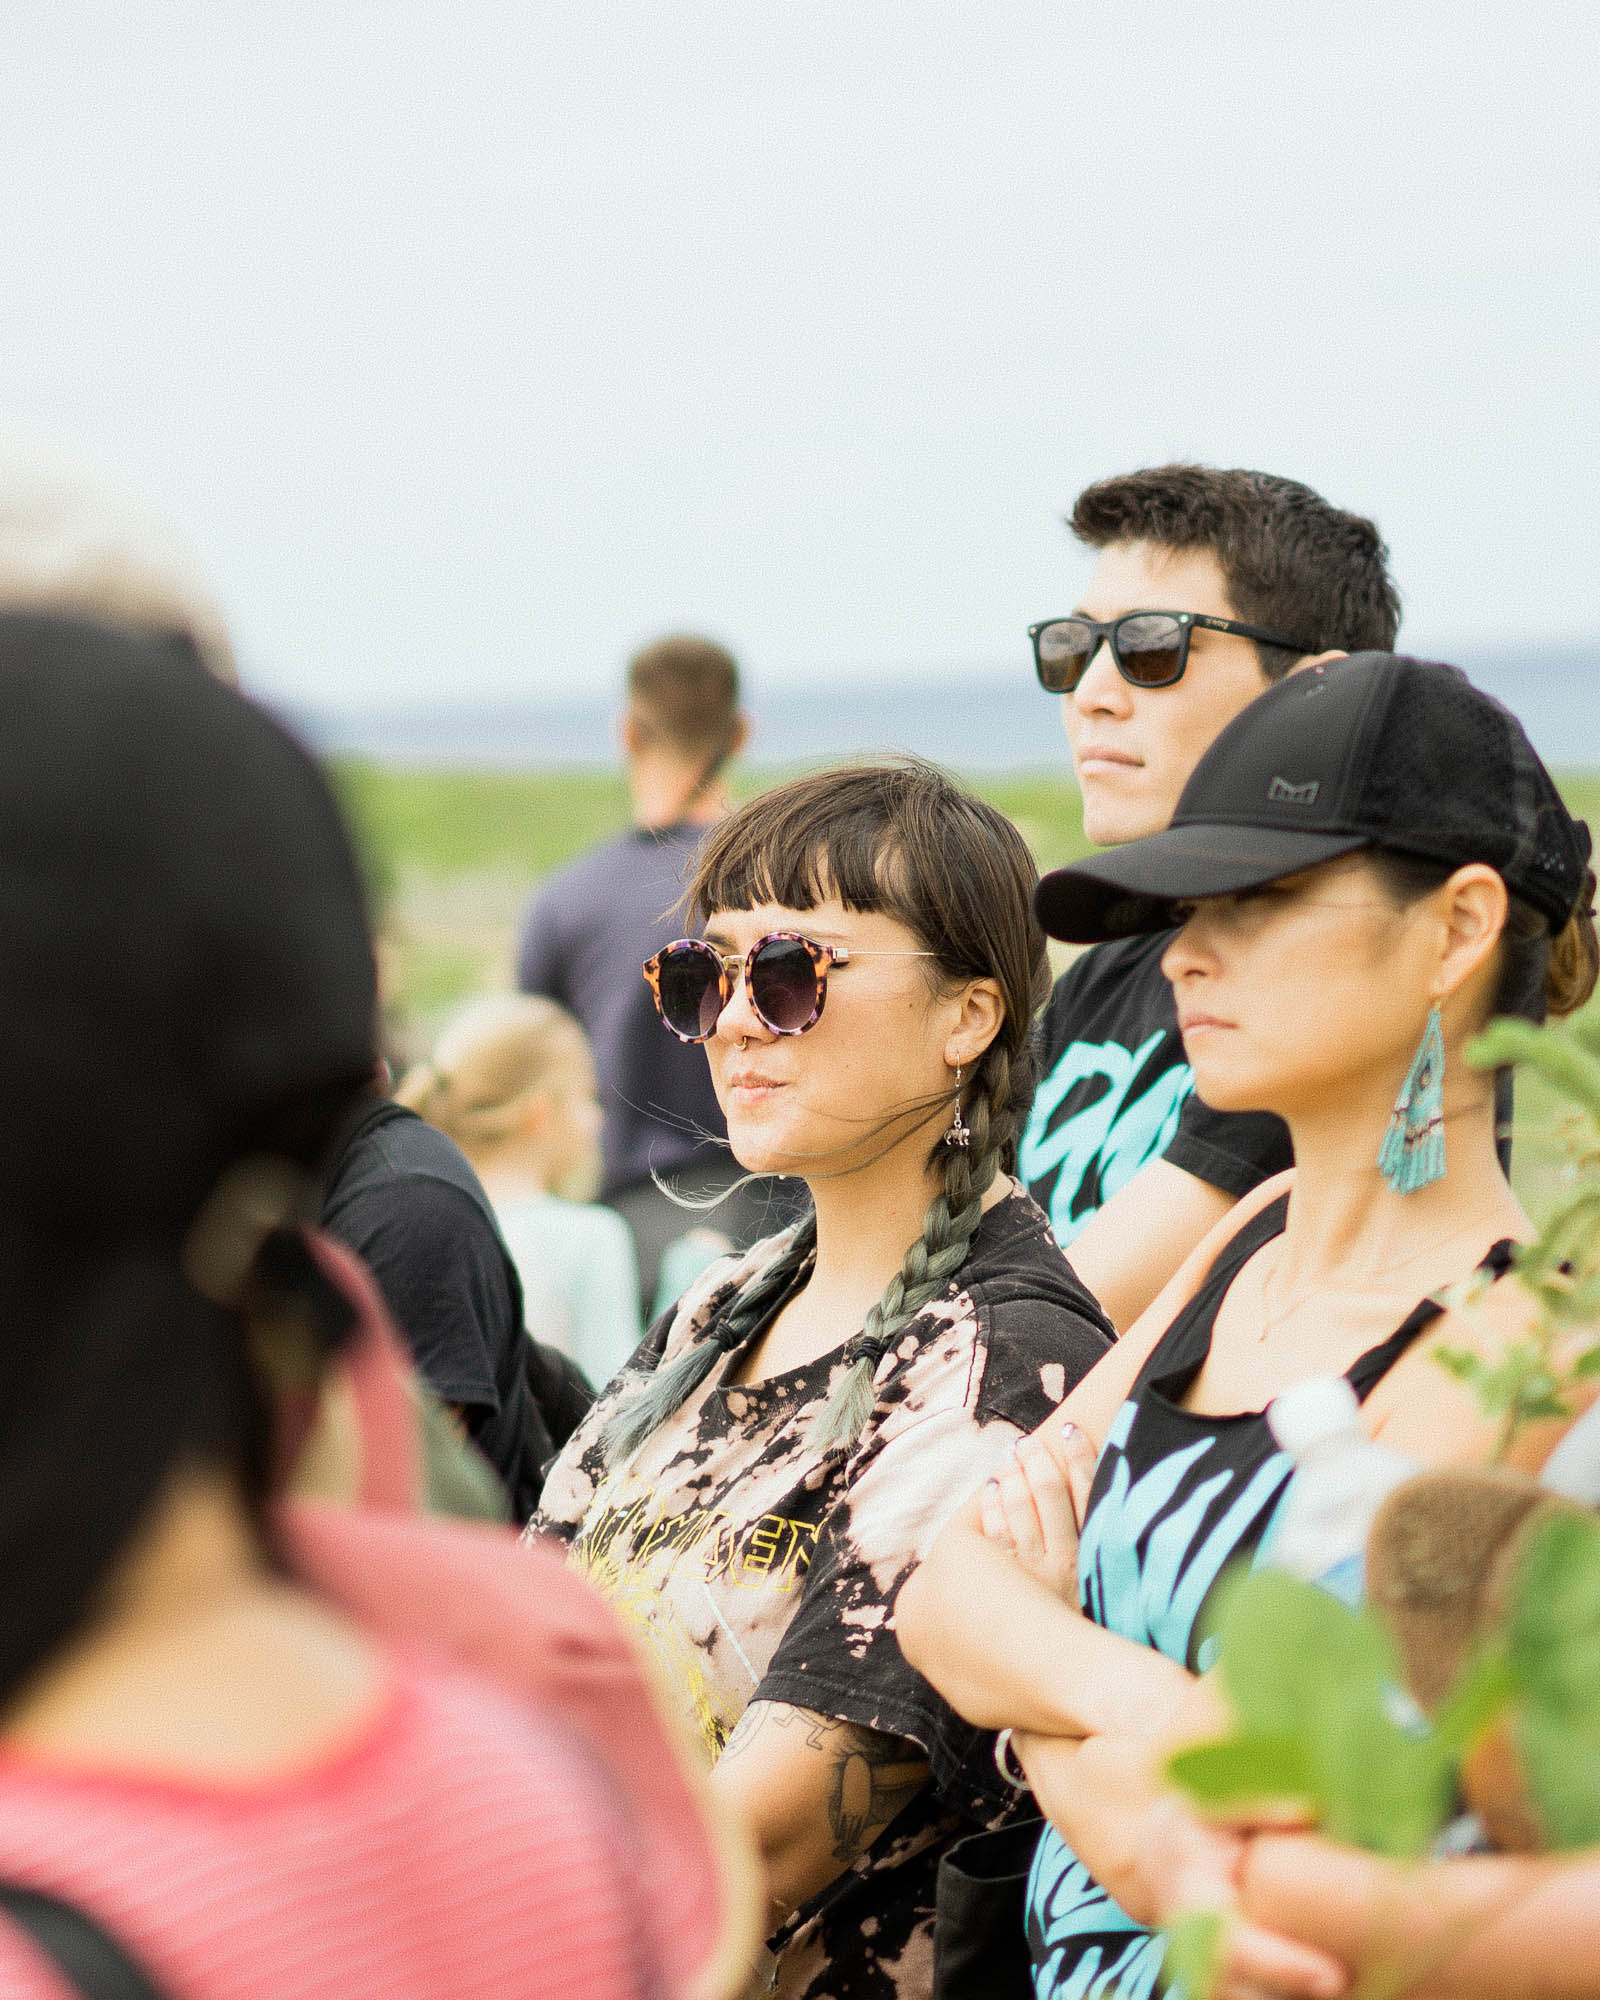 Artist Lauren YS learns about the Albatross birds in the area.